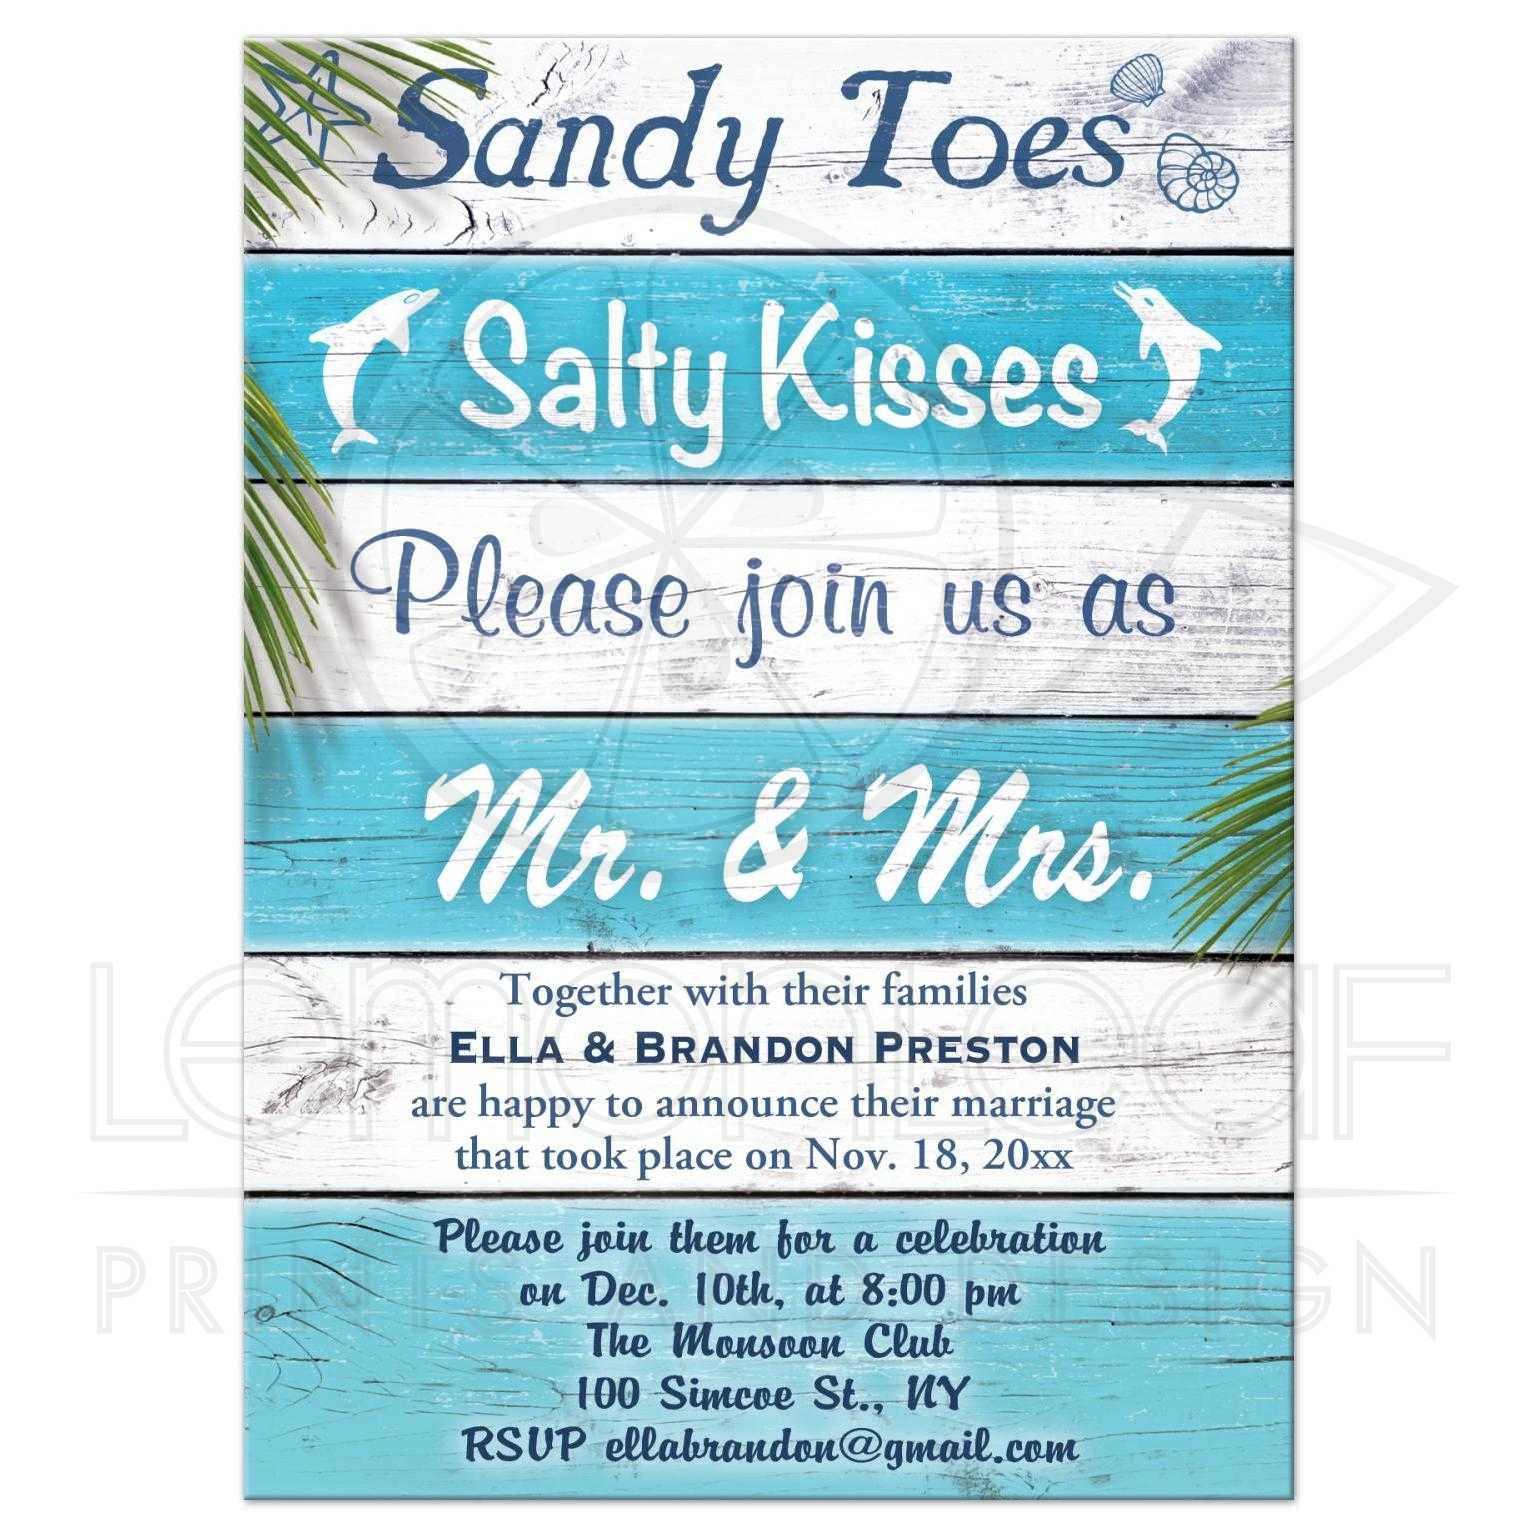 Post Wedding Reception - Turquoise Beach Sandy Toes Salty Kisses